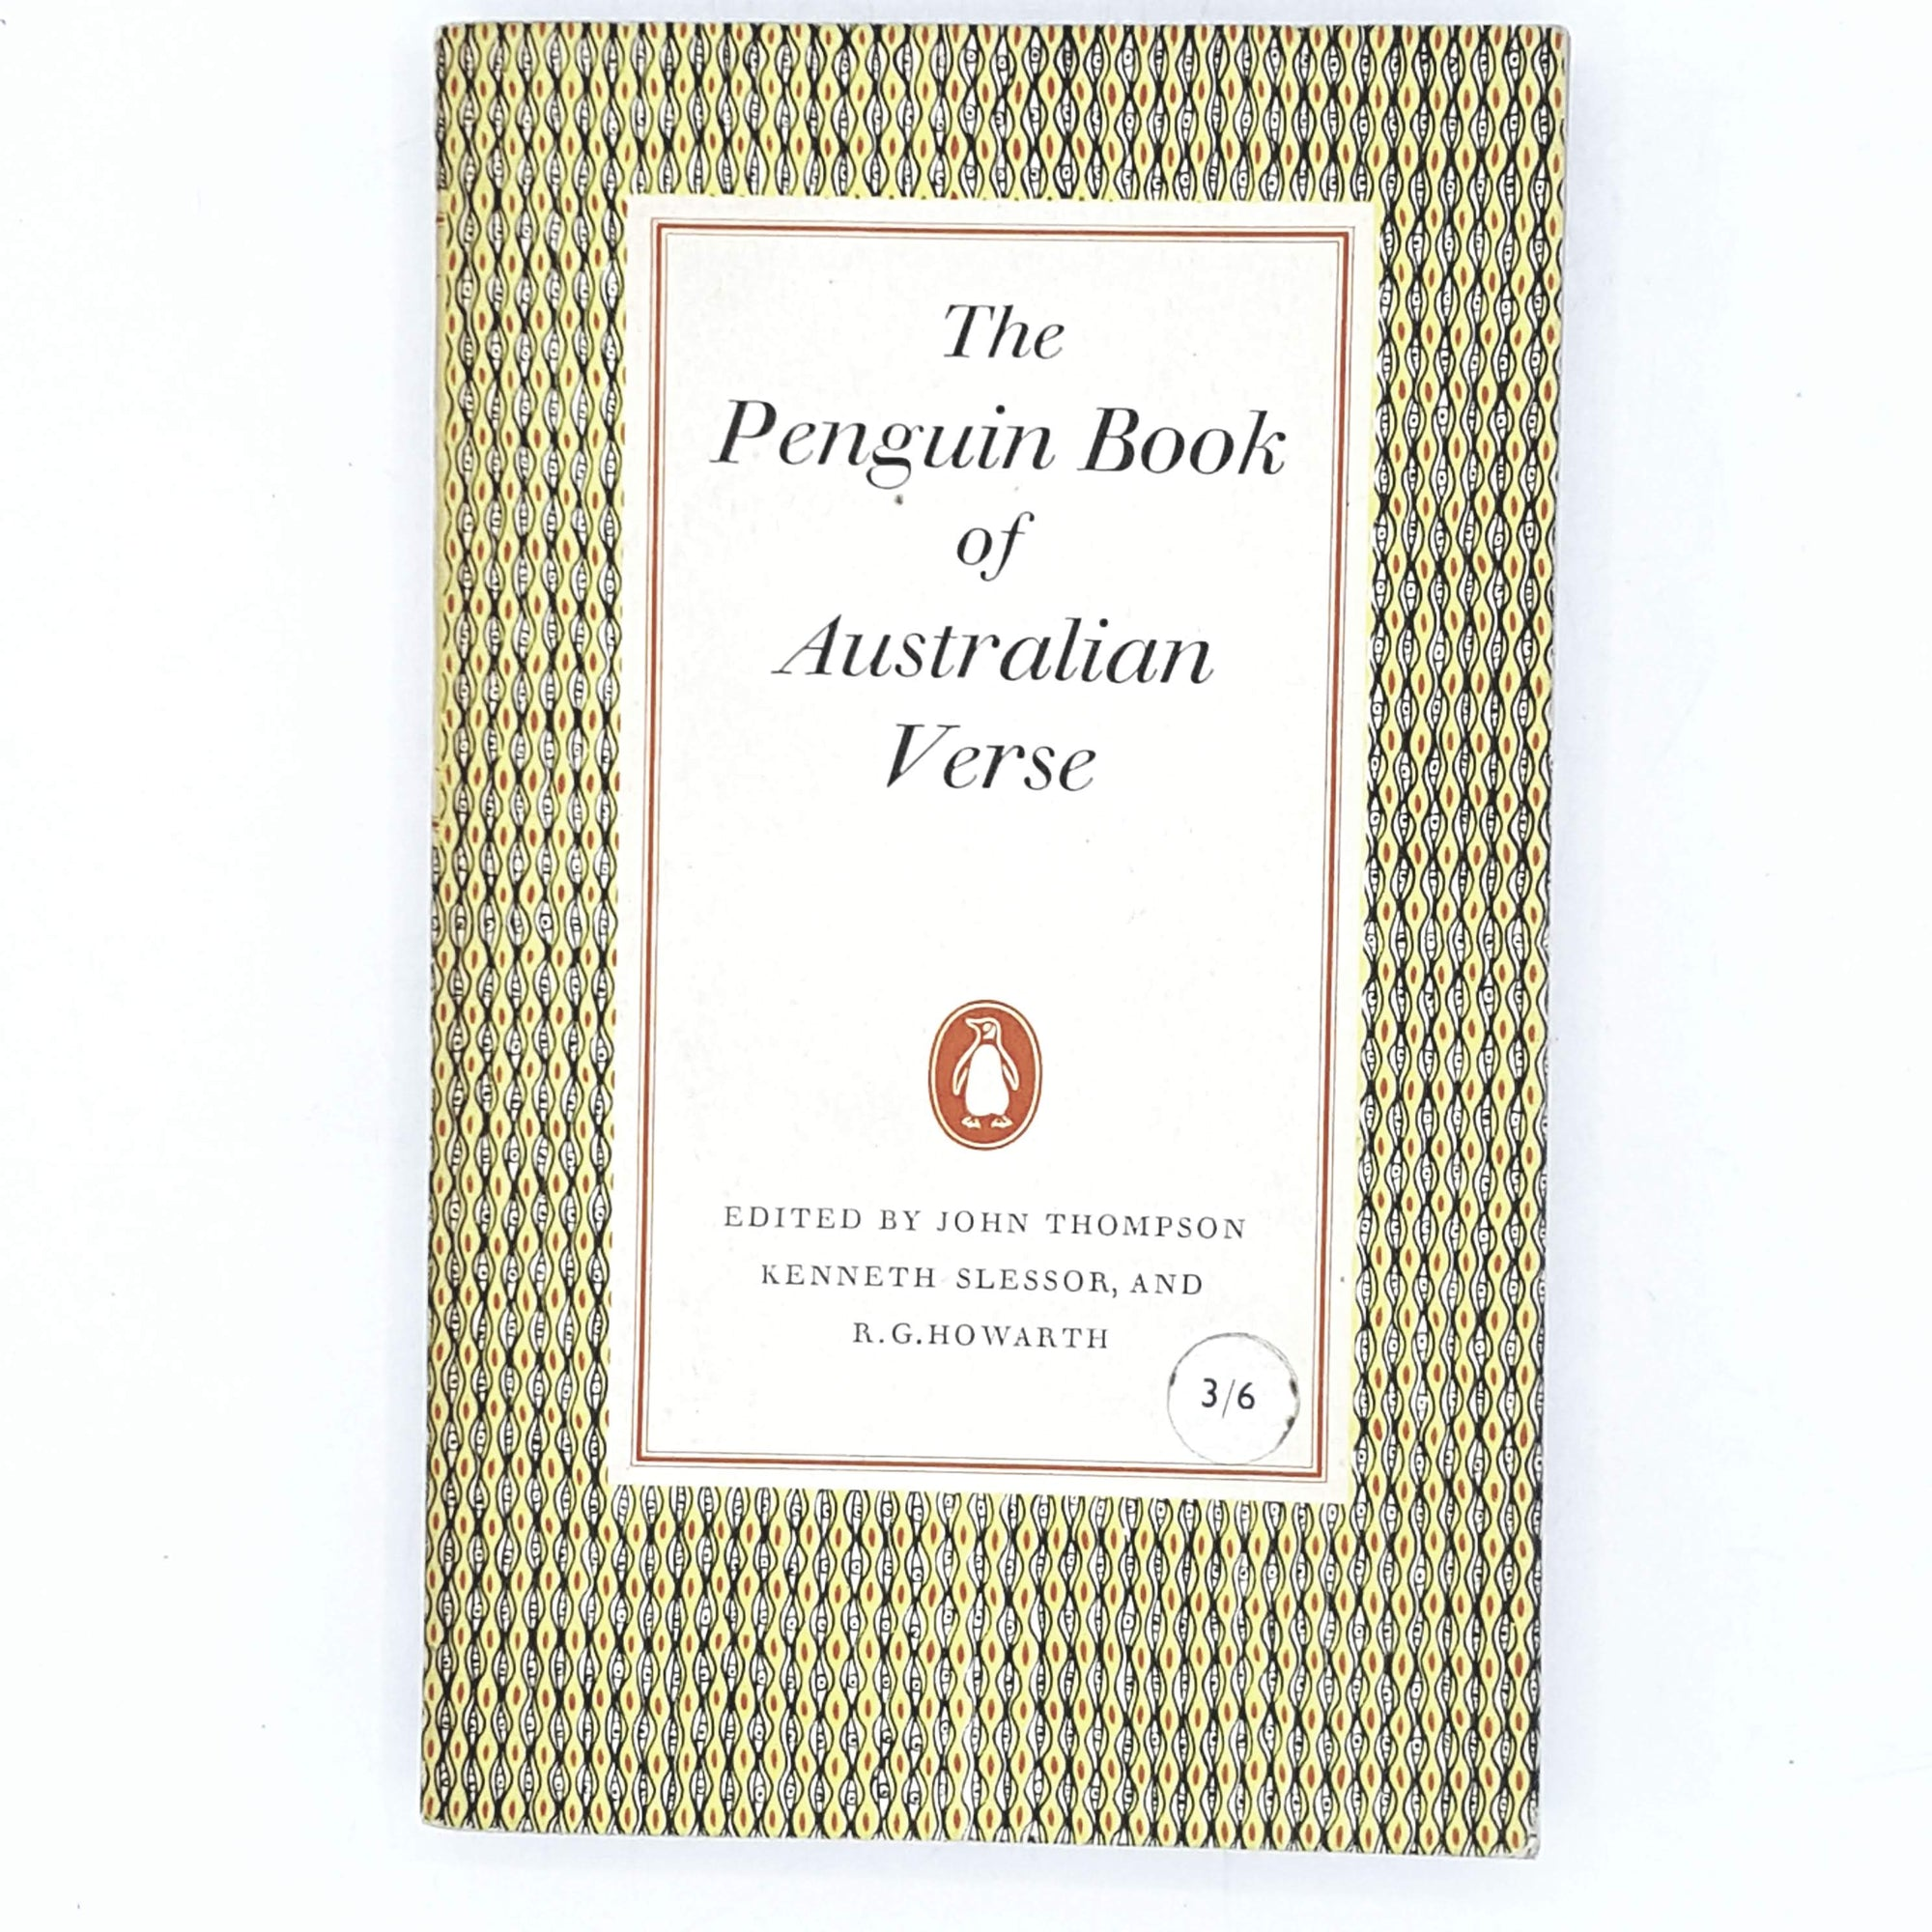 First Edition Penguin Book of Australian Verse 1958